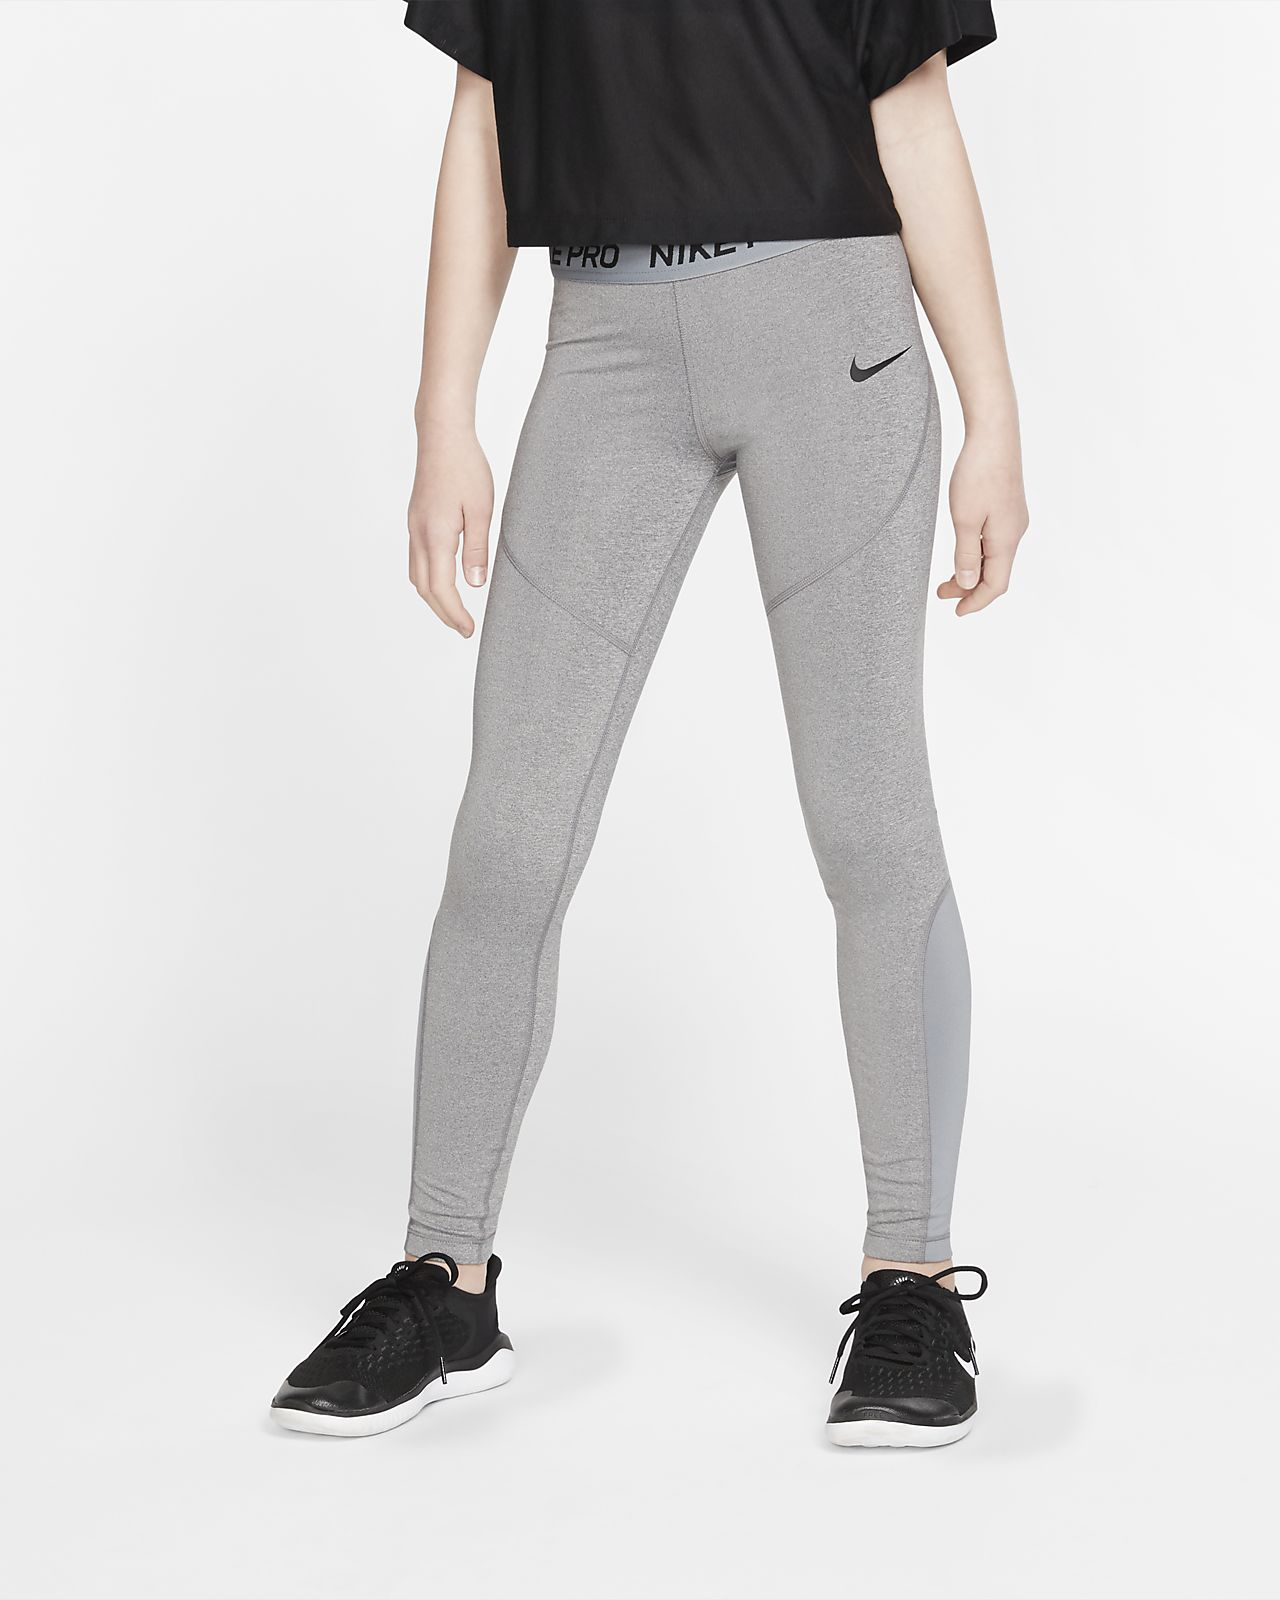 Nike Pro Older Kids' (Girls') Tights